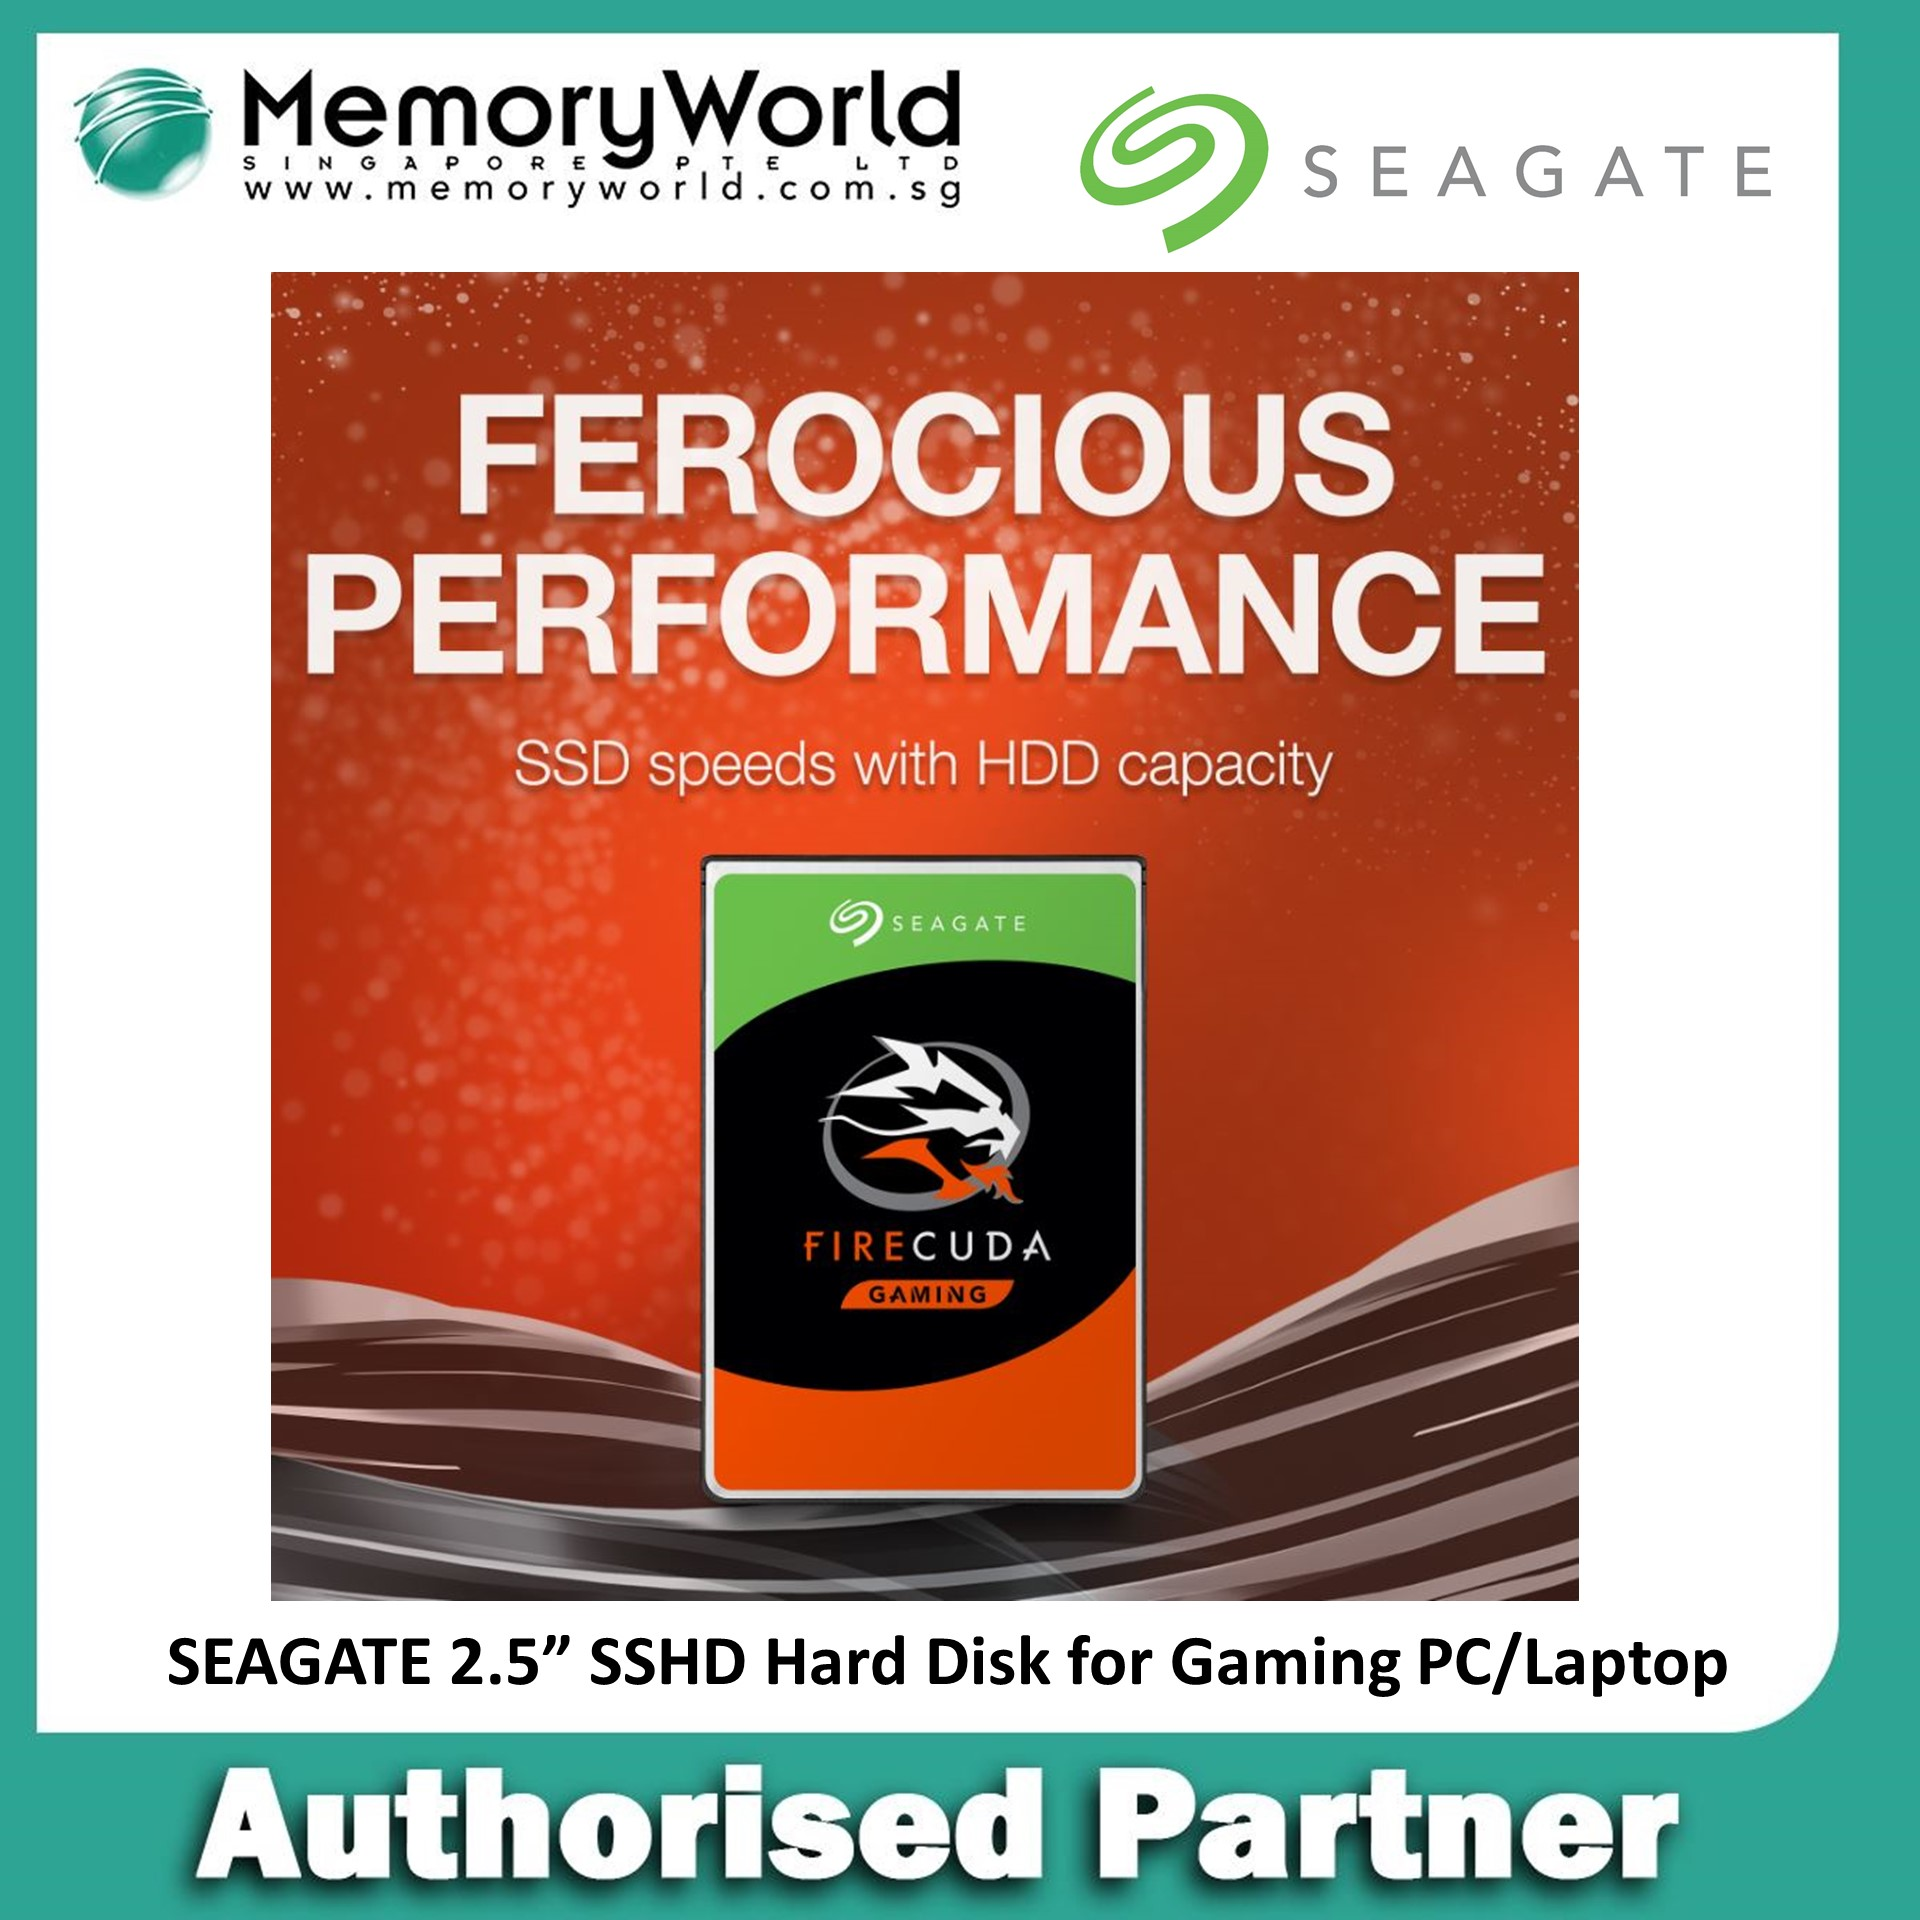 Seagate Firecuda 2.5 1tb Gaming Flash Accelerated Performance Hard Drive, Solid State Hybrid Drive (sshd) Hard Disk For Gaming Pc/ Laptop.  Seagate Singapore Warranty 5 Years.  **seagate Official Partner**.